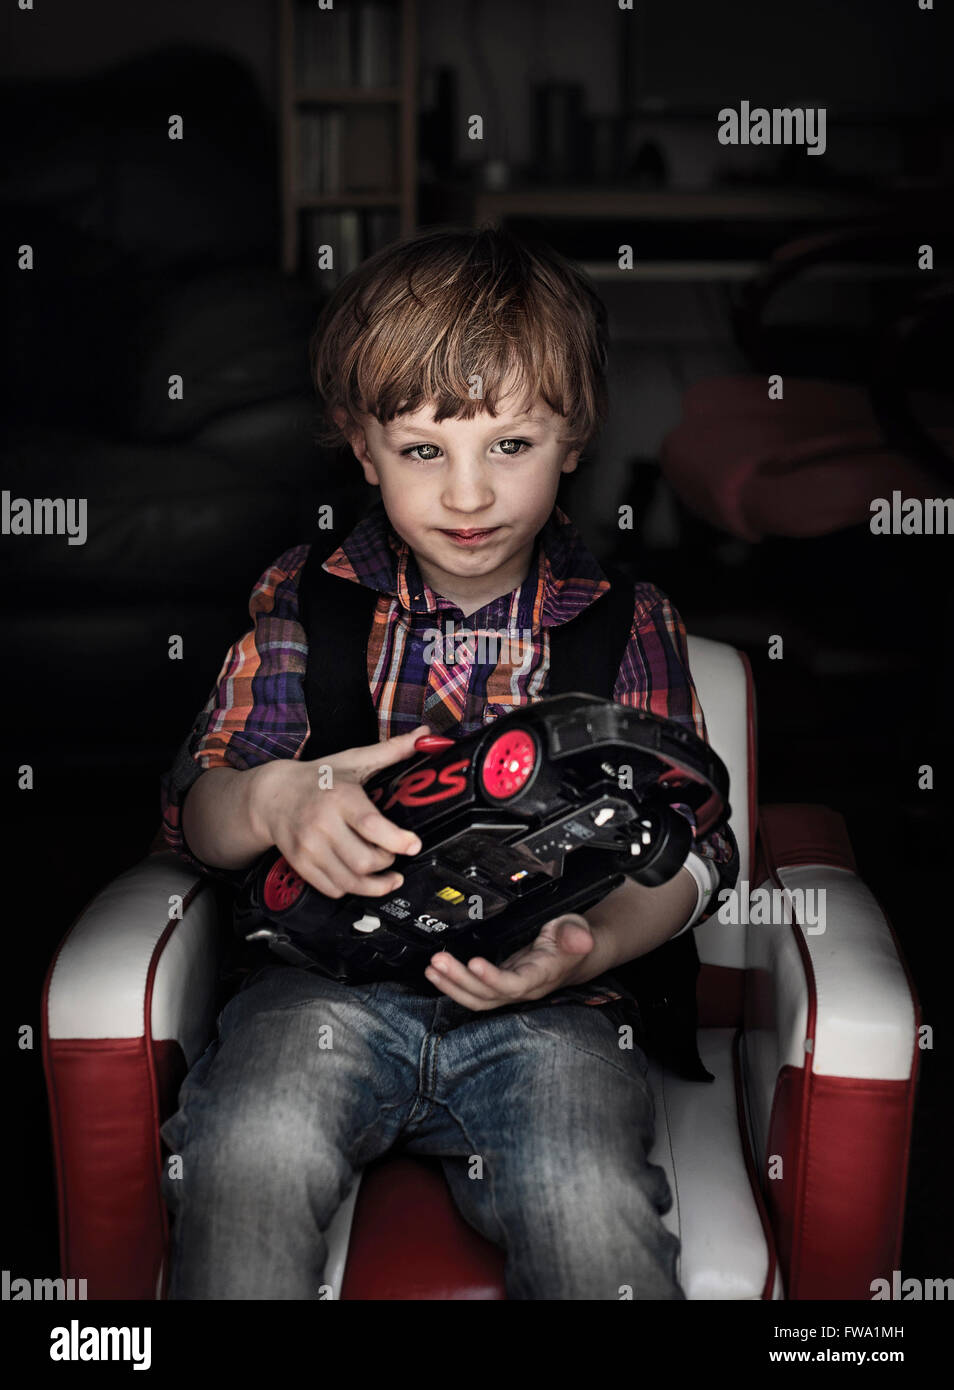 a boy sitting in armchair holding a car toy in dark room - Stock Image